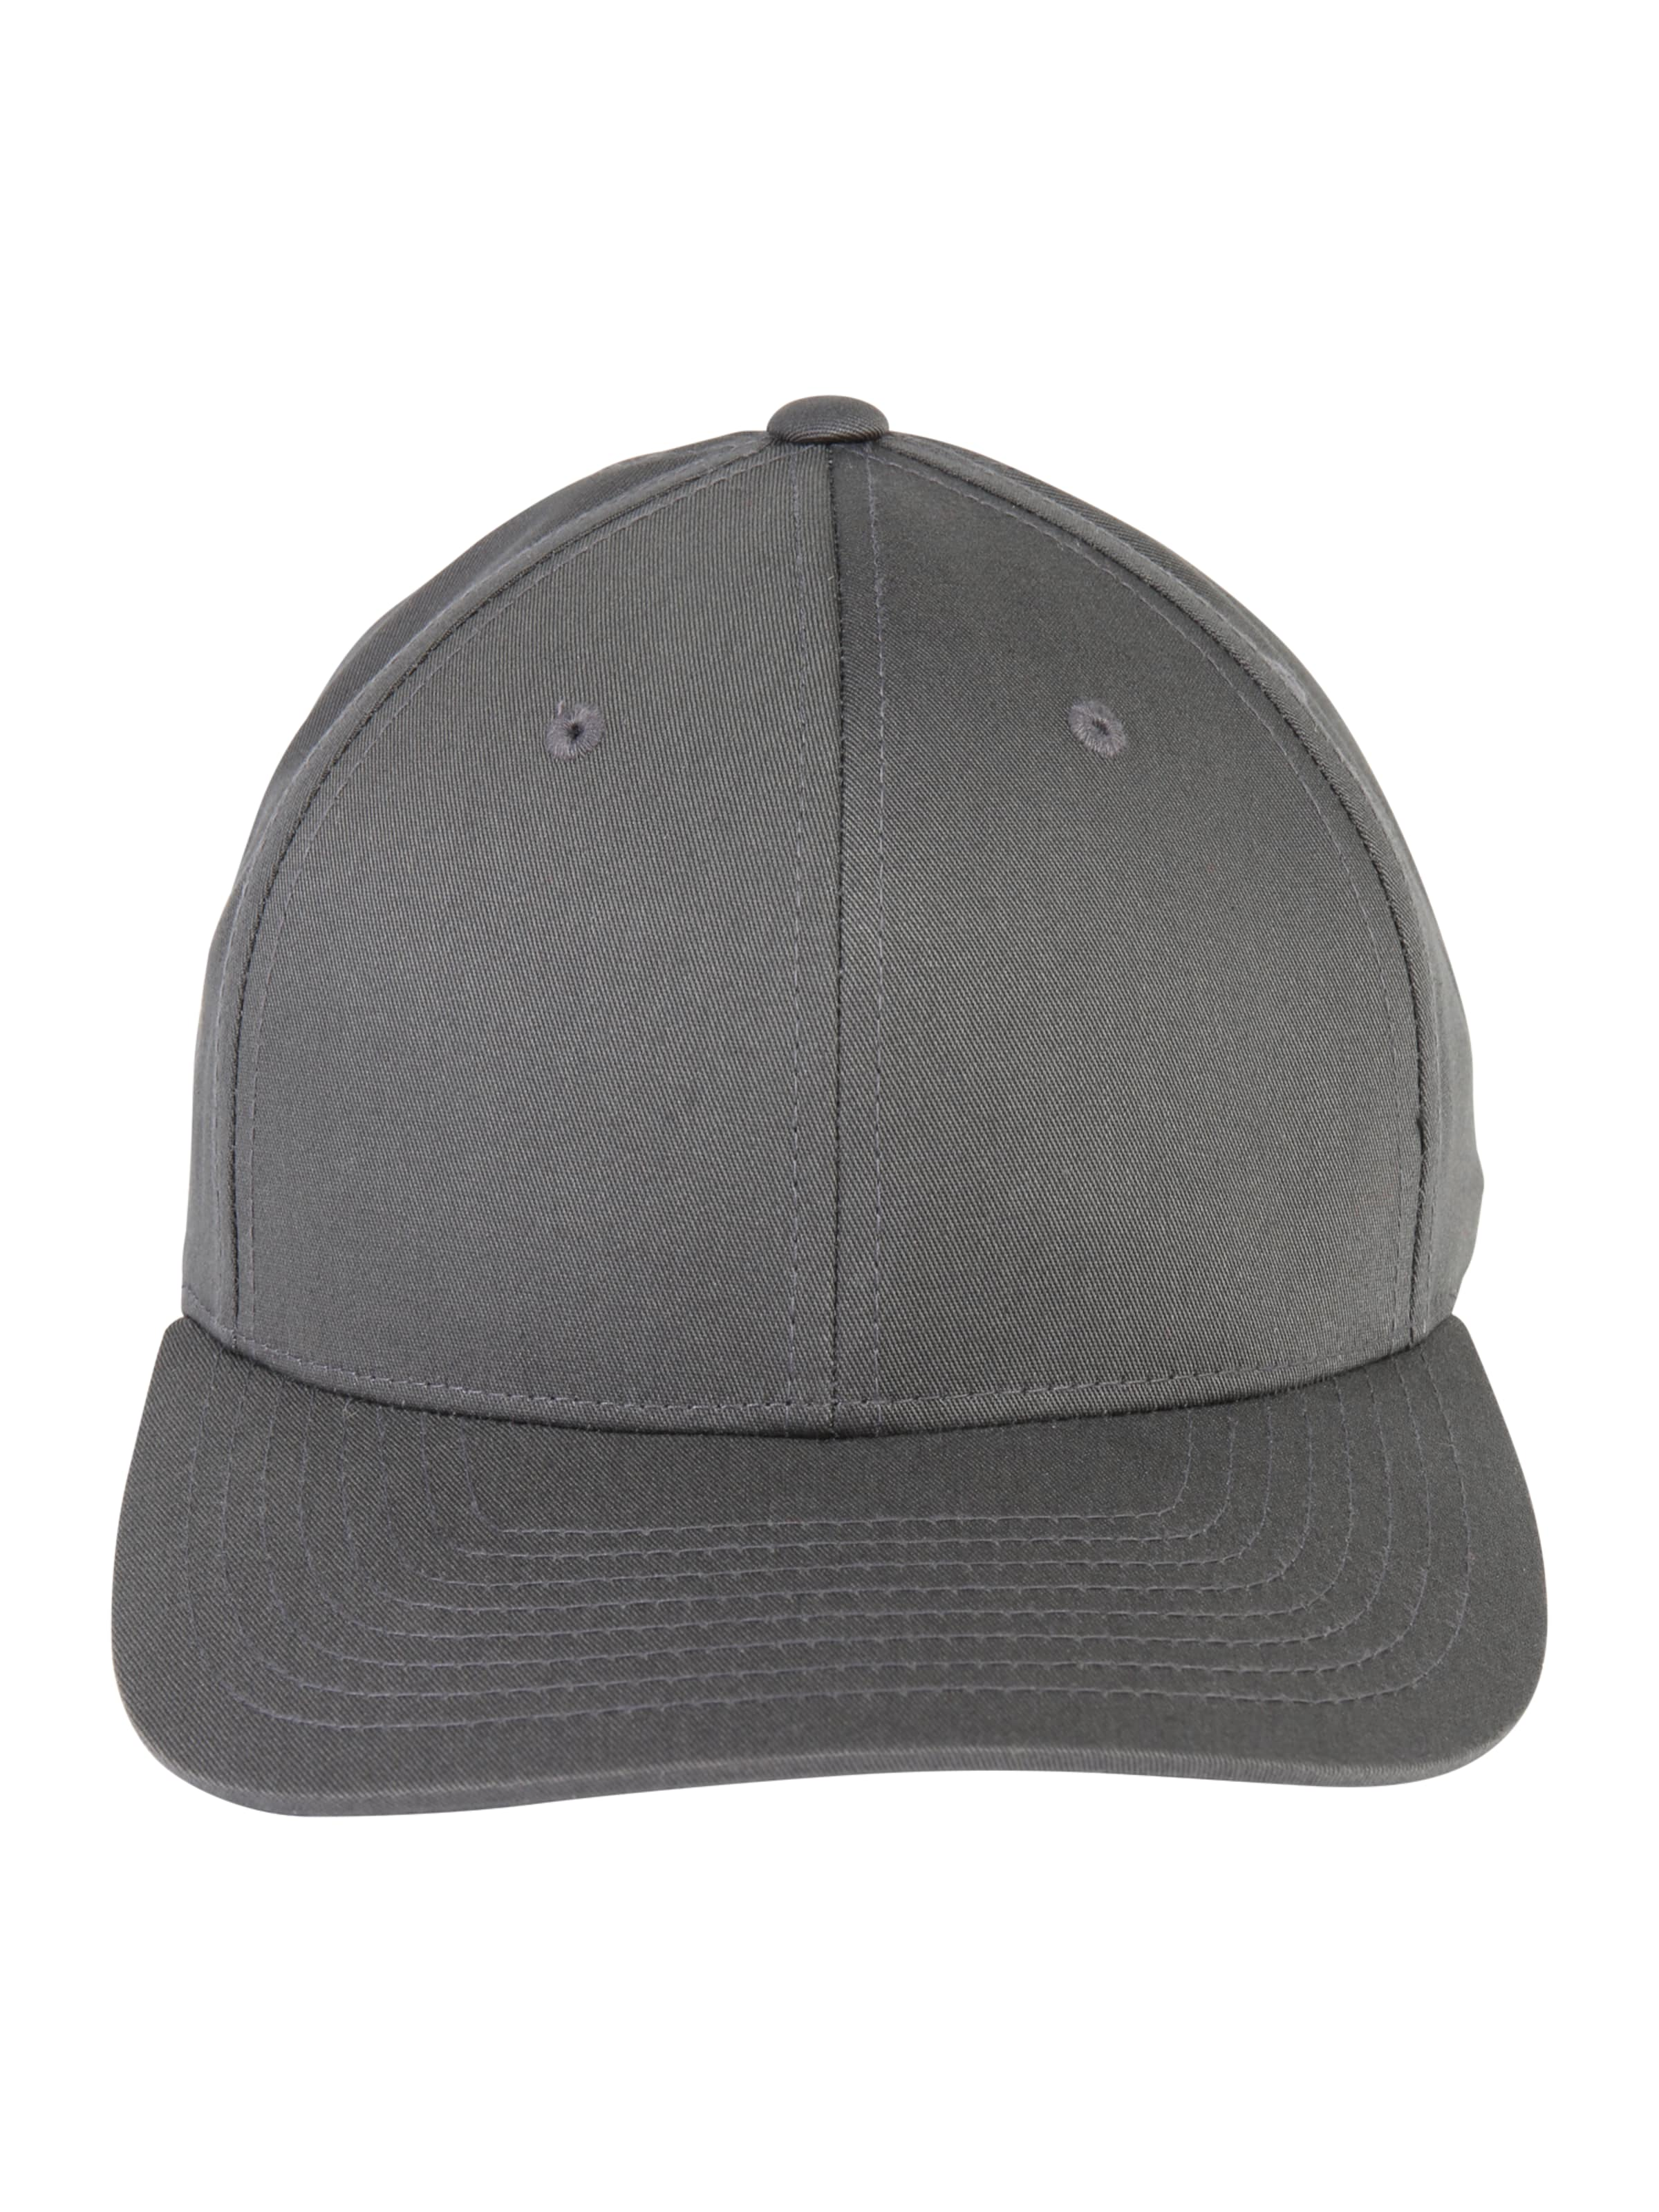 In Pet Schwarz Classic Flexfit Snapback' 'curved zLpqUMVSG